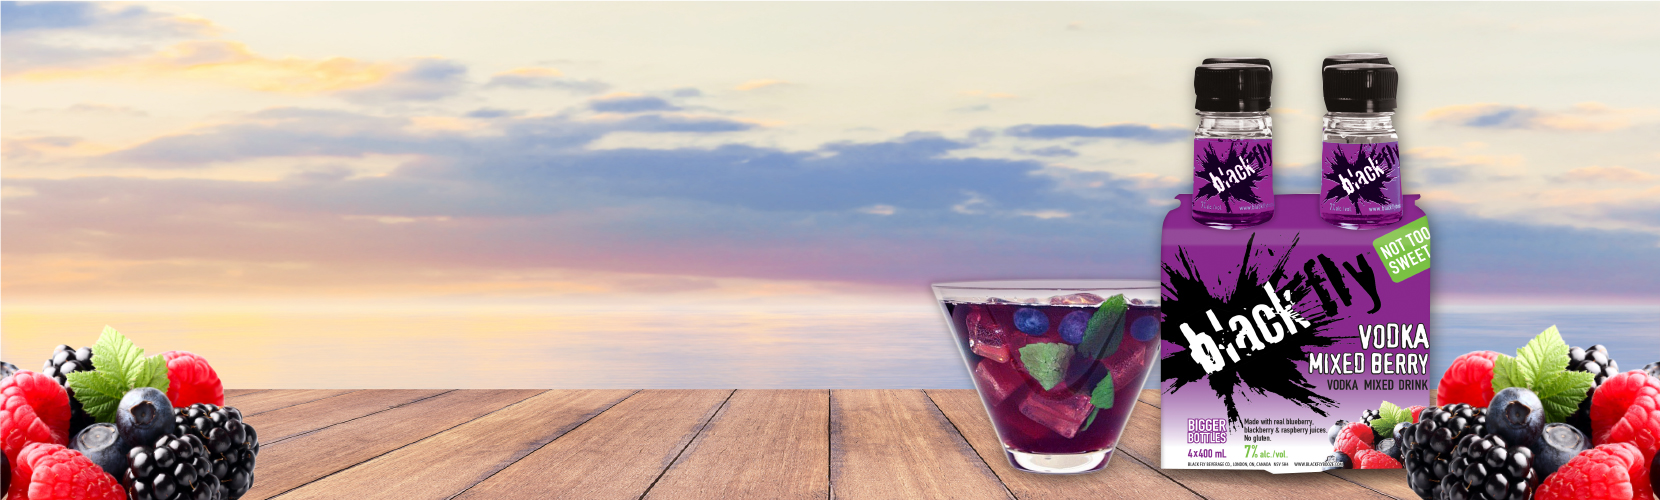 Vodka Mixed Berry